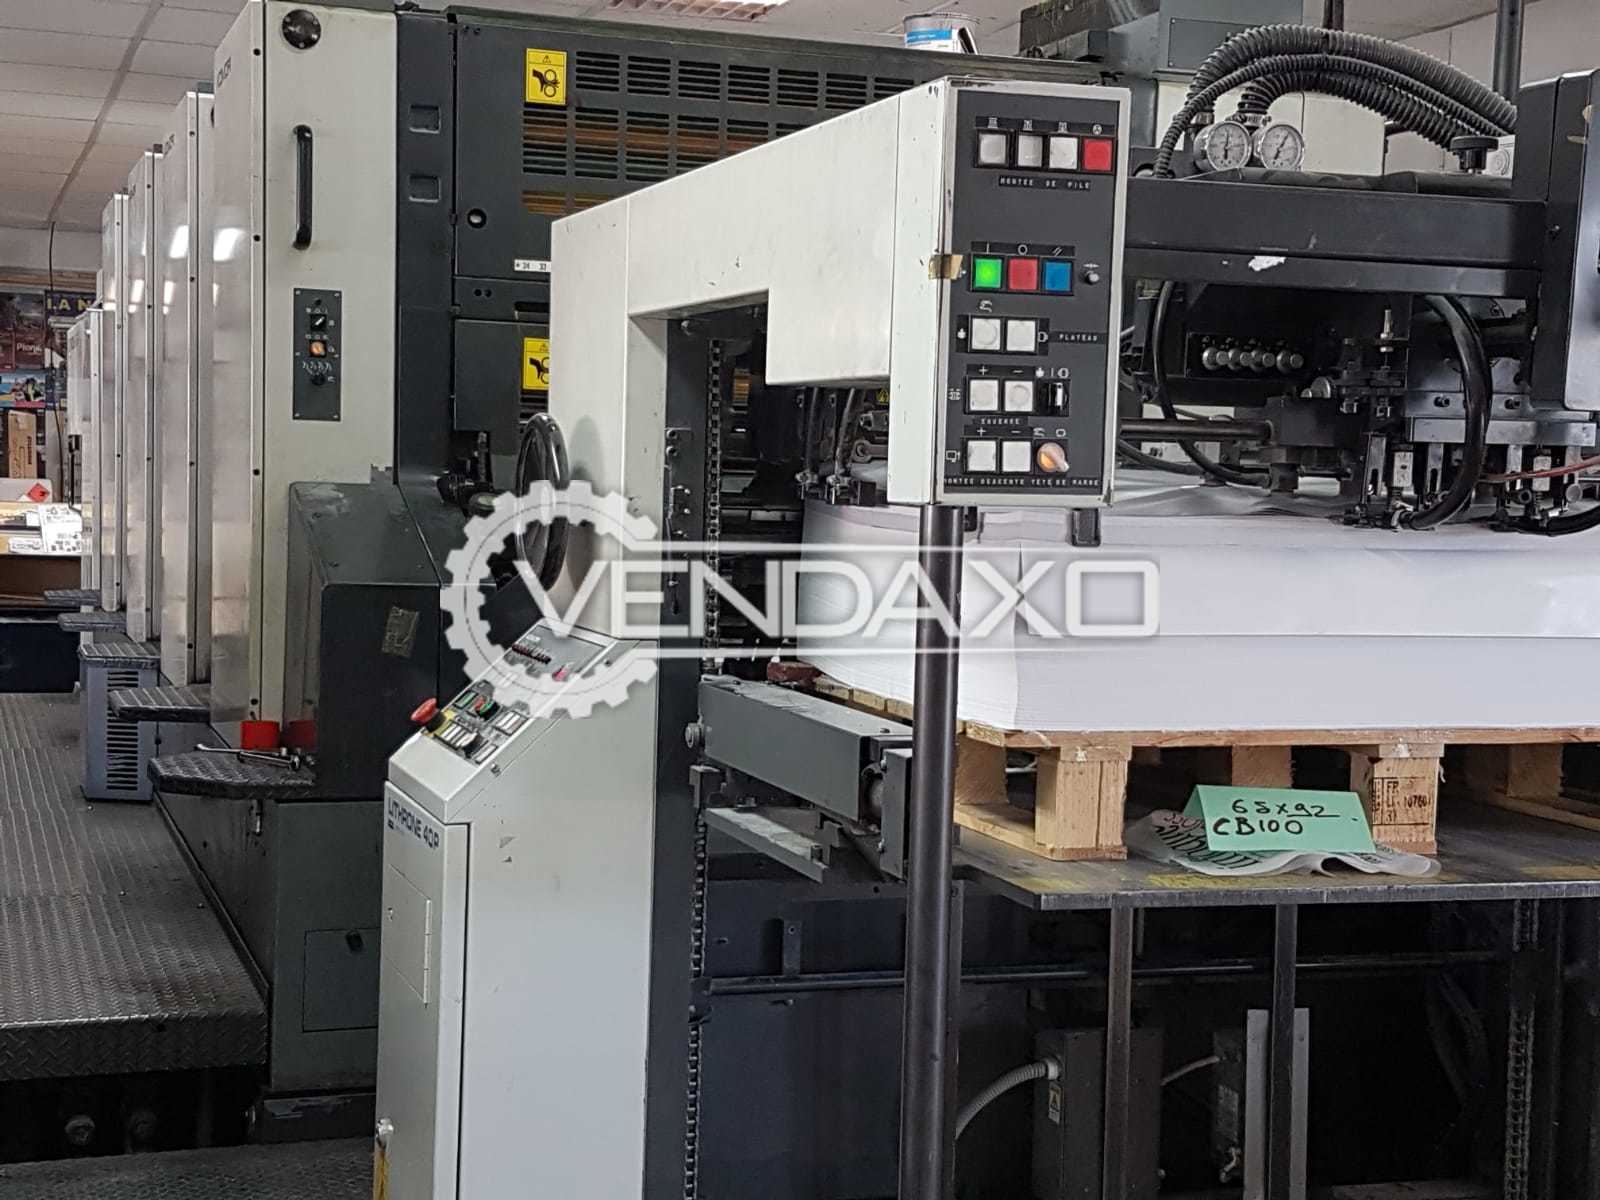 Komori Lithrone 440 Offset Printing Machine - Size - 28 x 40 Inch, 4 Color